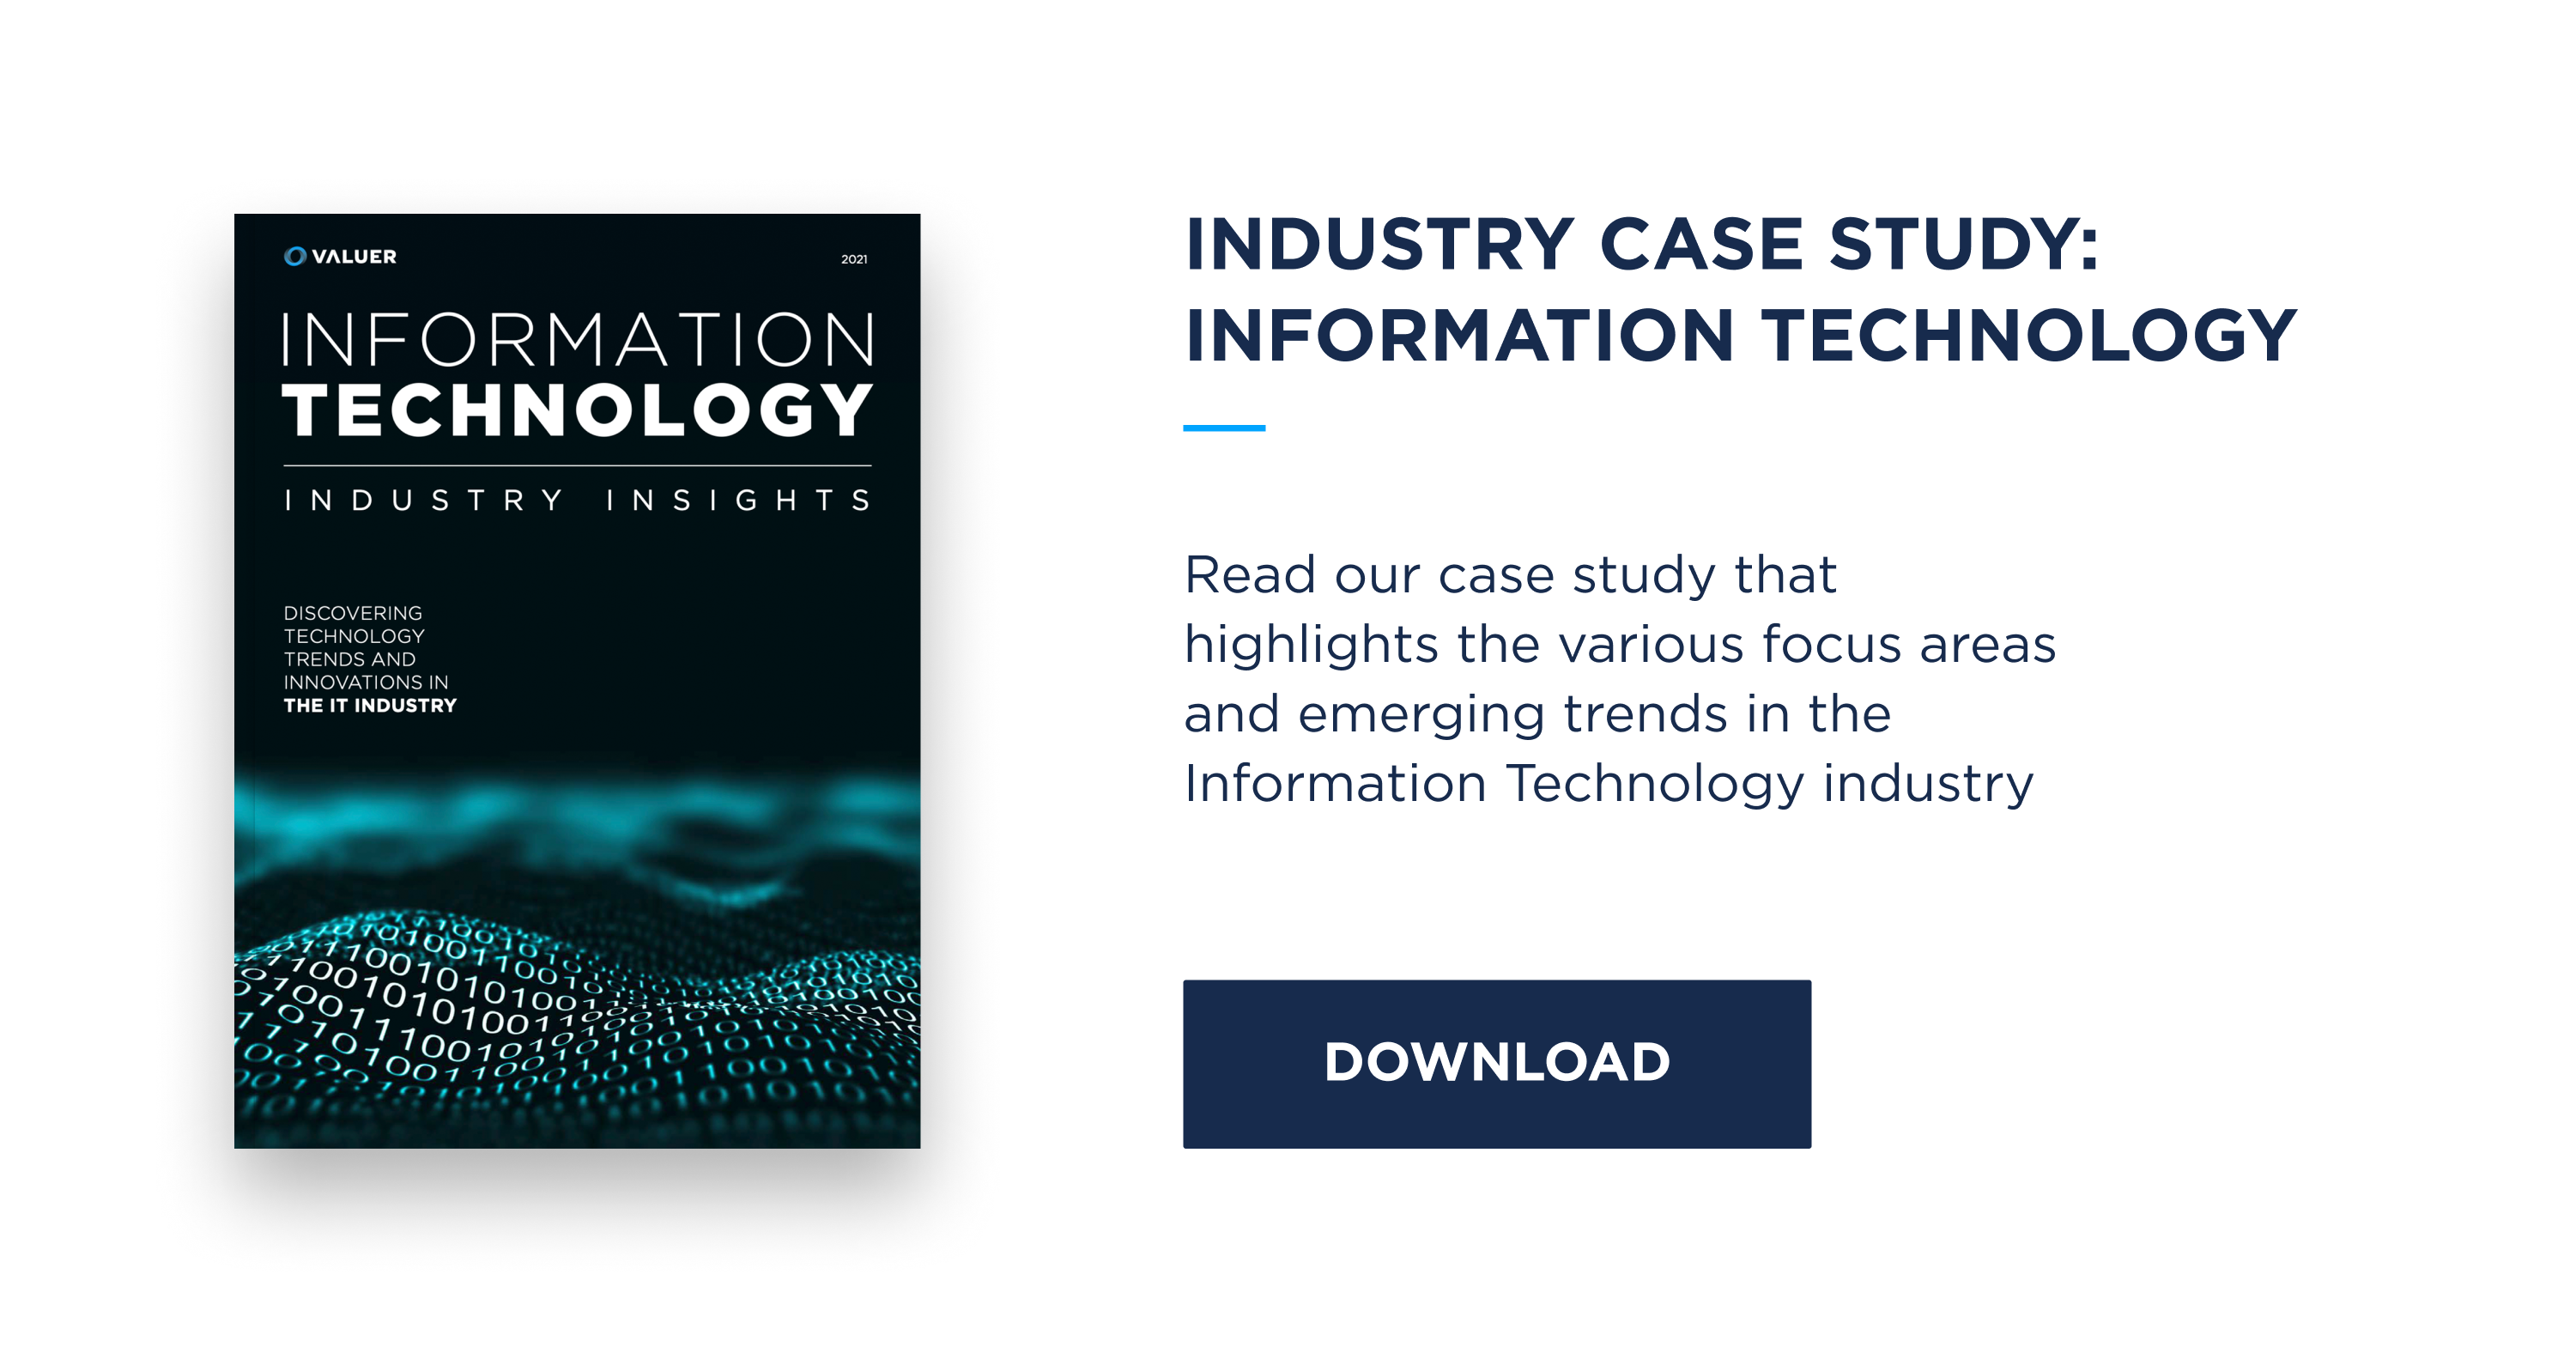 information technology case study with image of code